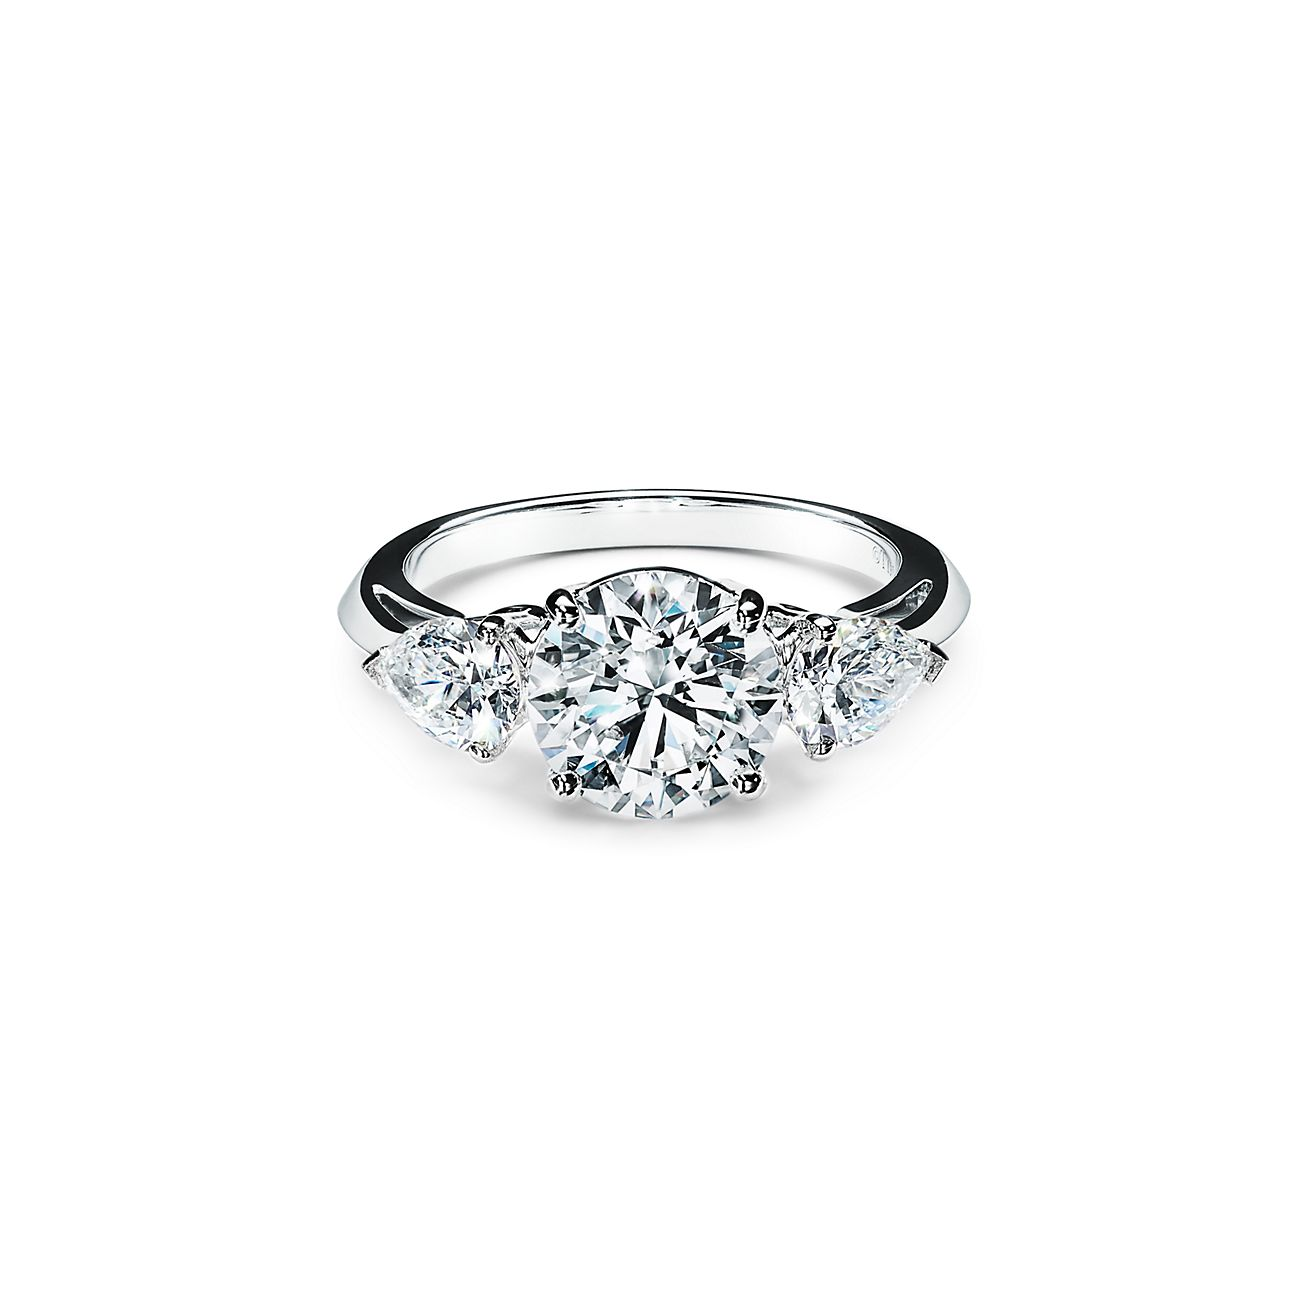 Excellent Pear Cut 925 Sterling Silver 14K White Gold Ring Certified 3.00 Ct Pear Shape White Diamond Engagement Ring,Three Stone Ring